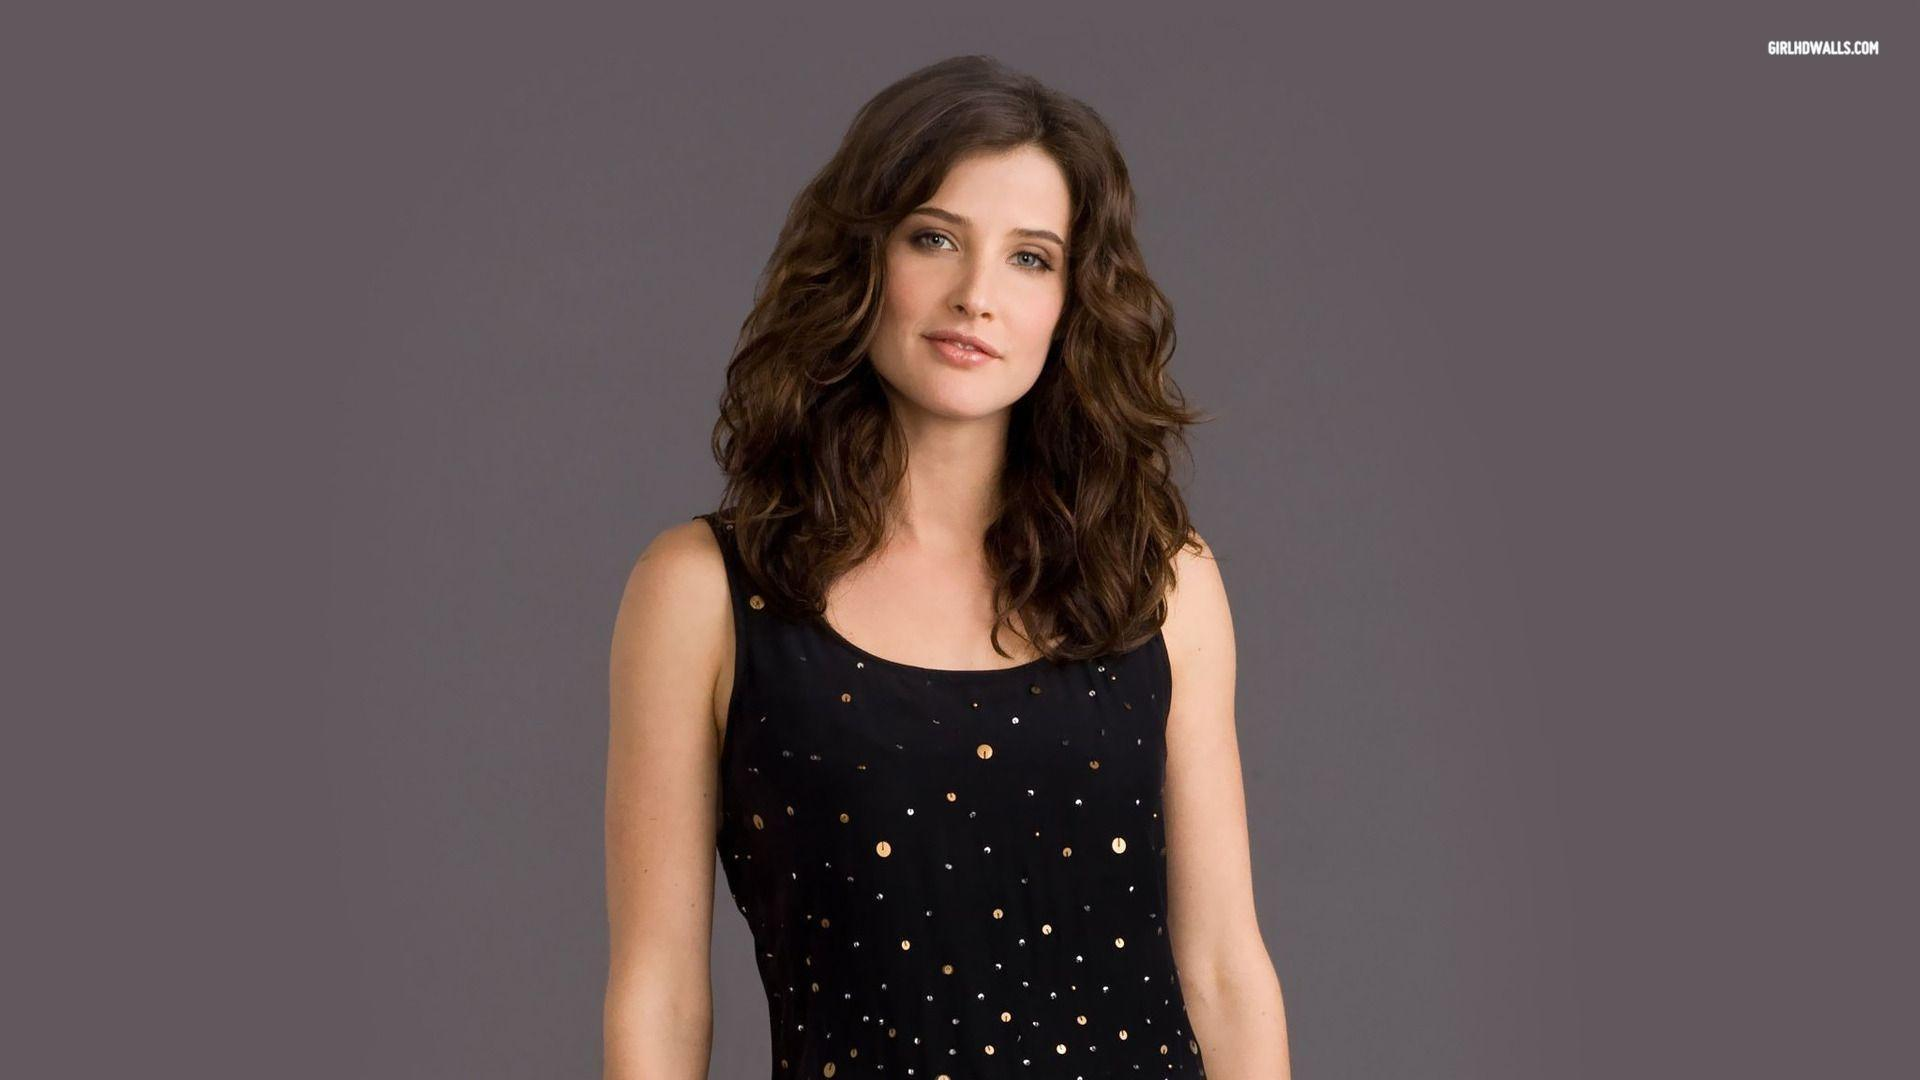 cobie smulders wallpapers - photo #8